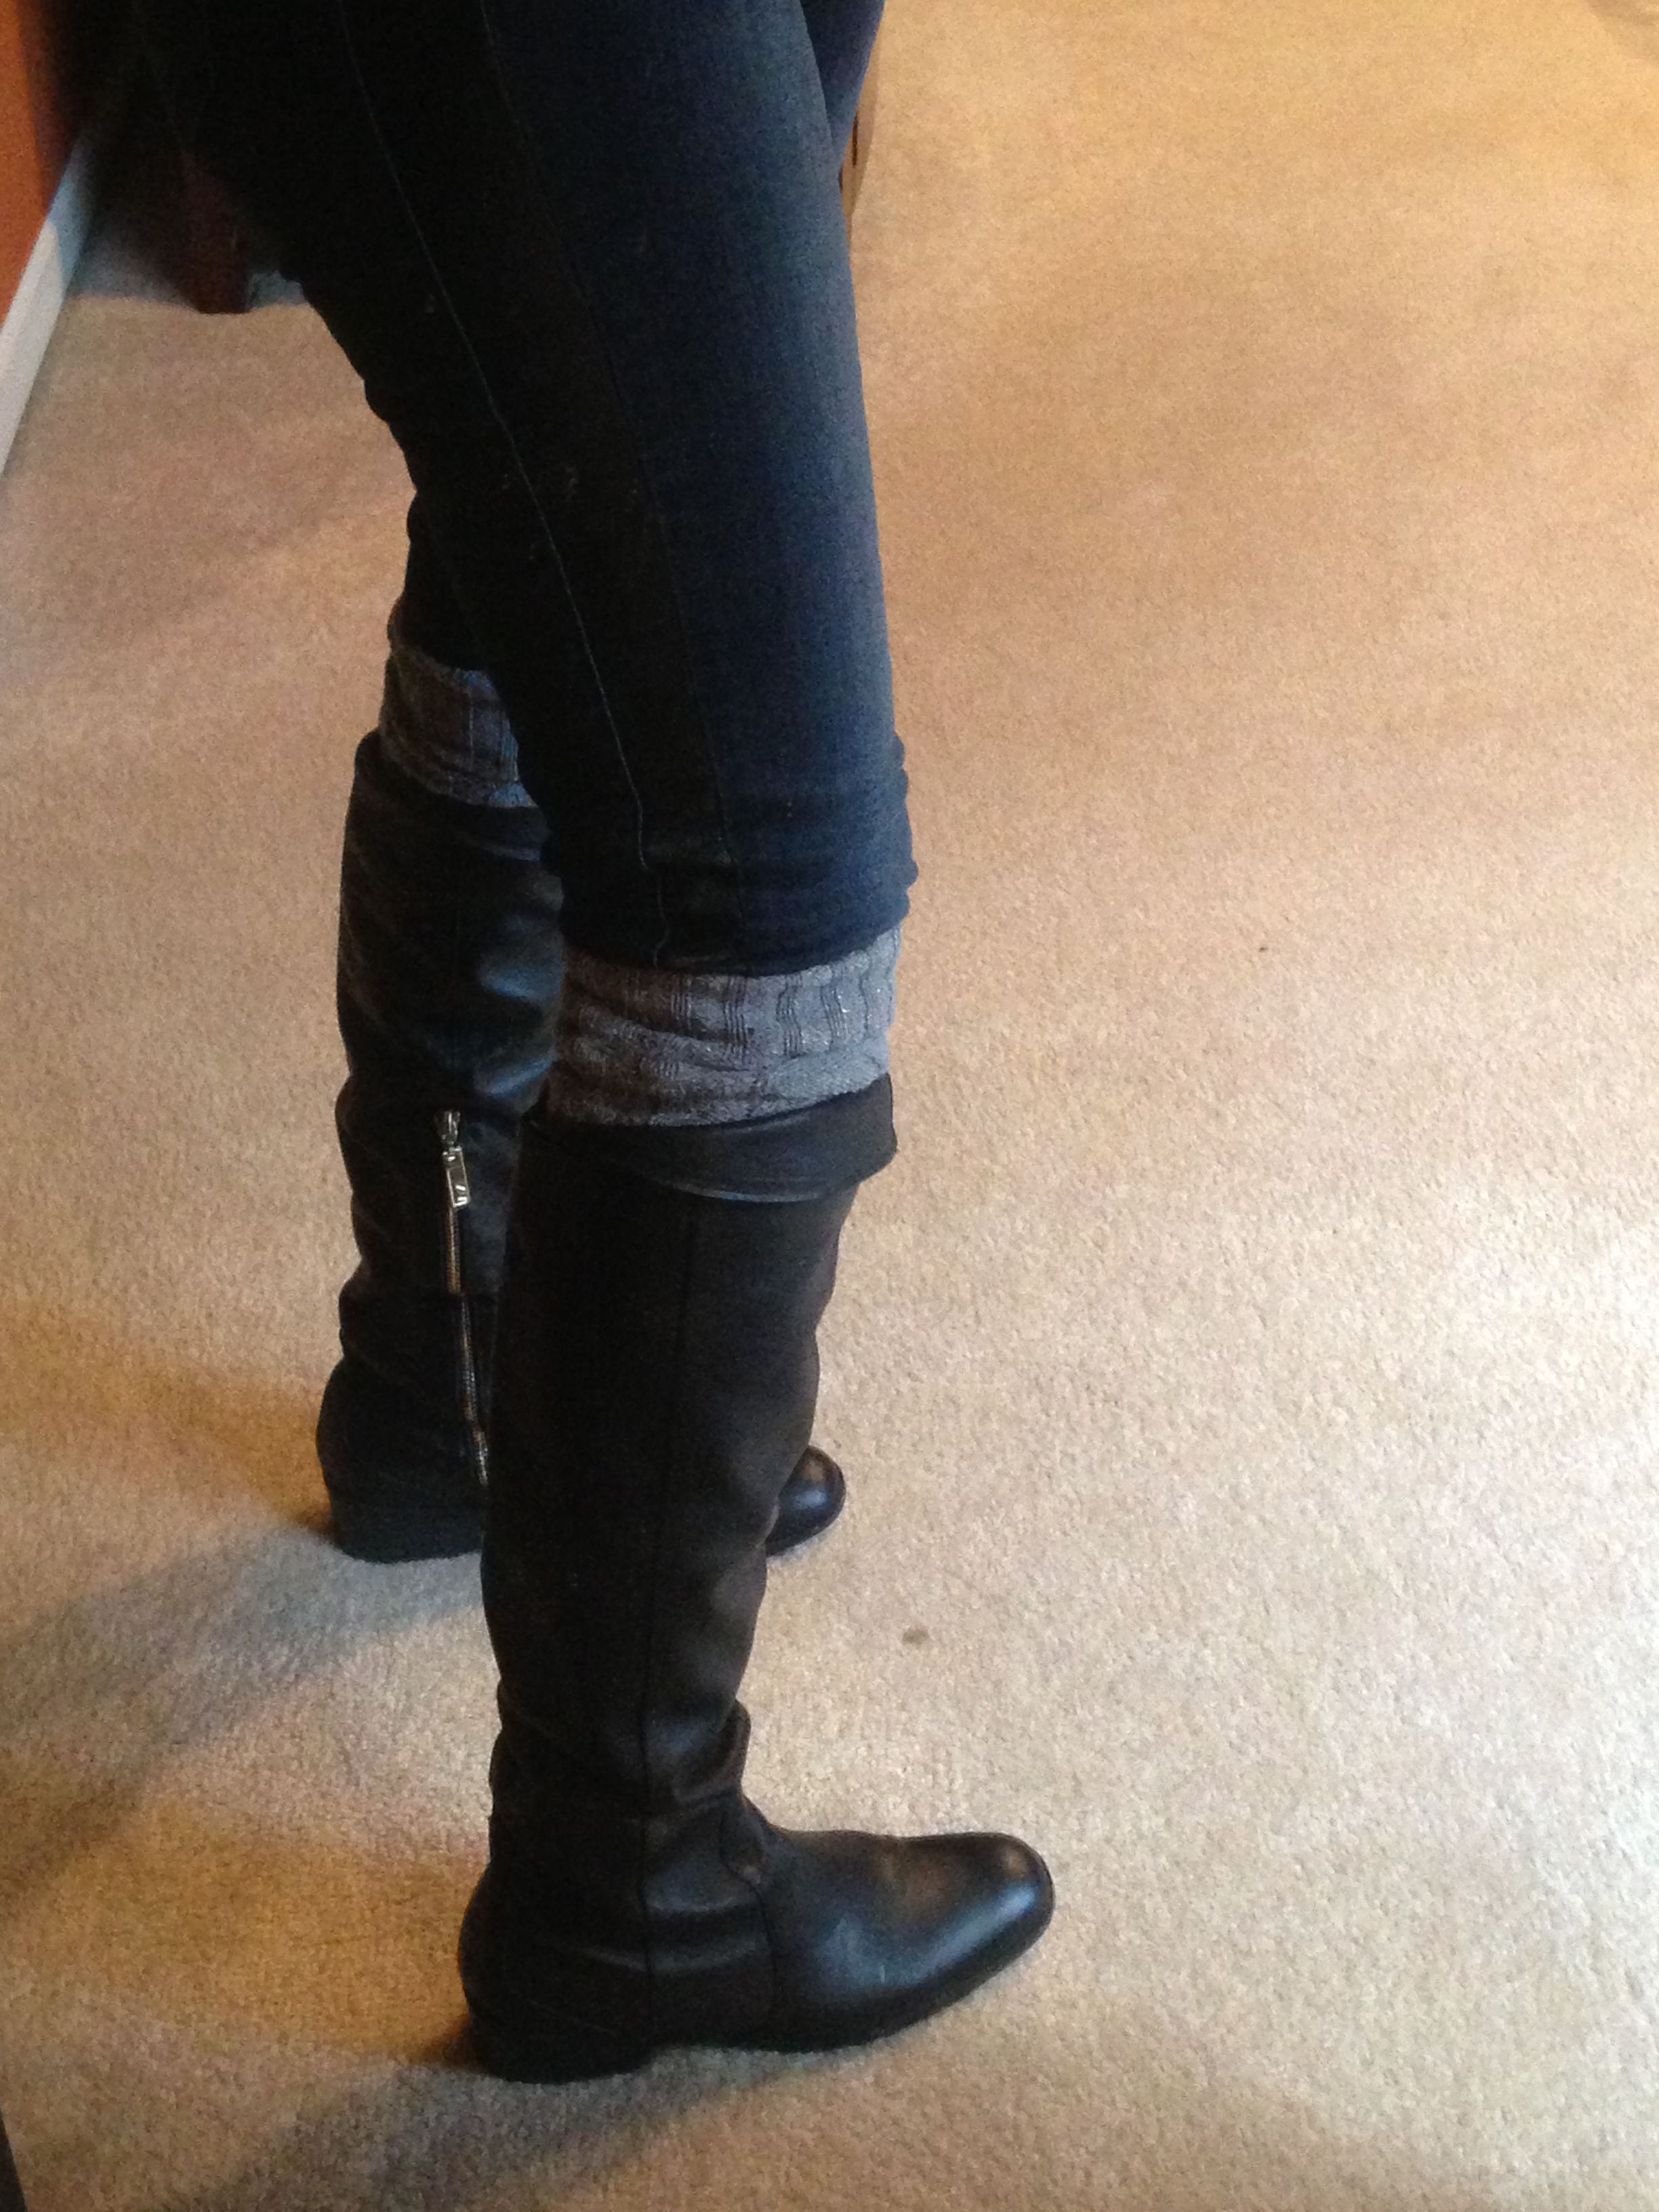 Matiko tall leather boots with gray sparkly leg warmers.